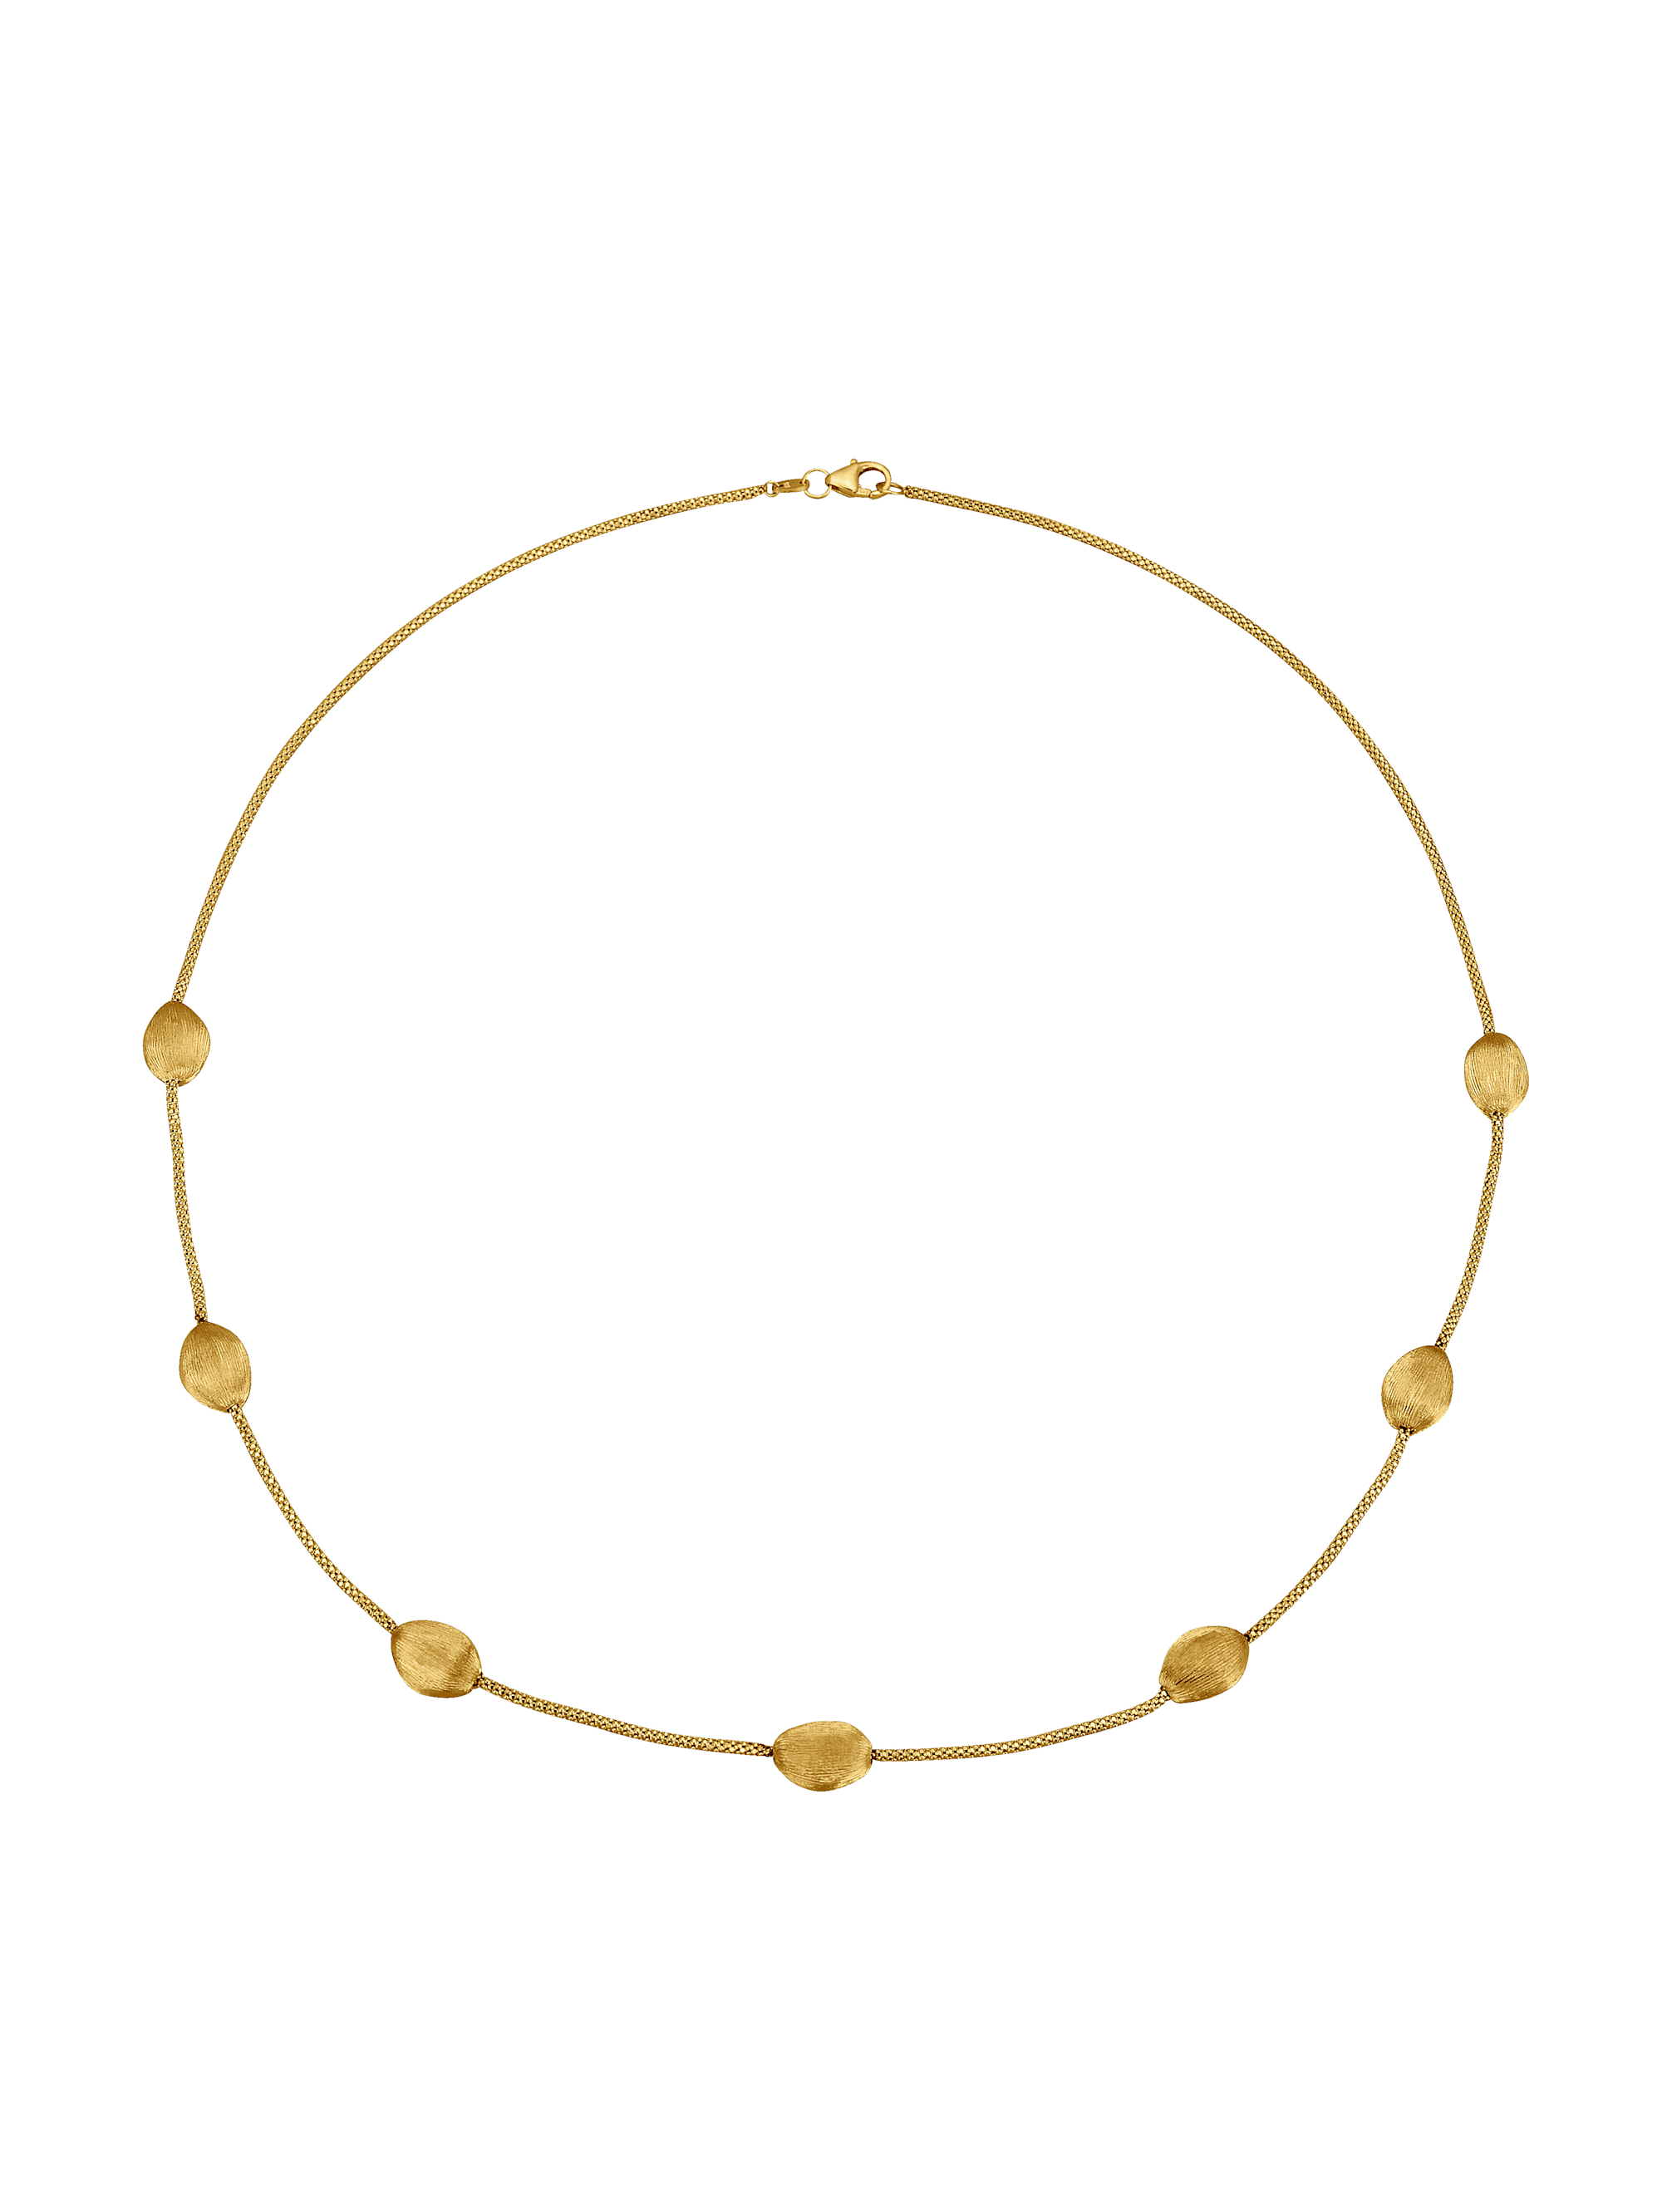 Collier in Gelbgold 375 eL620